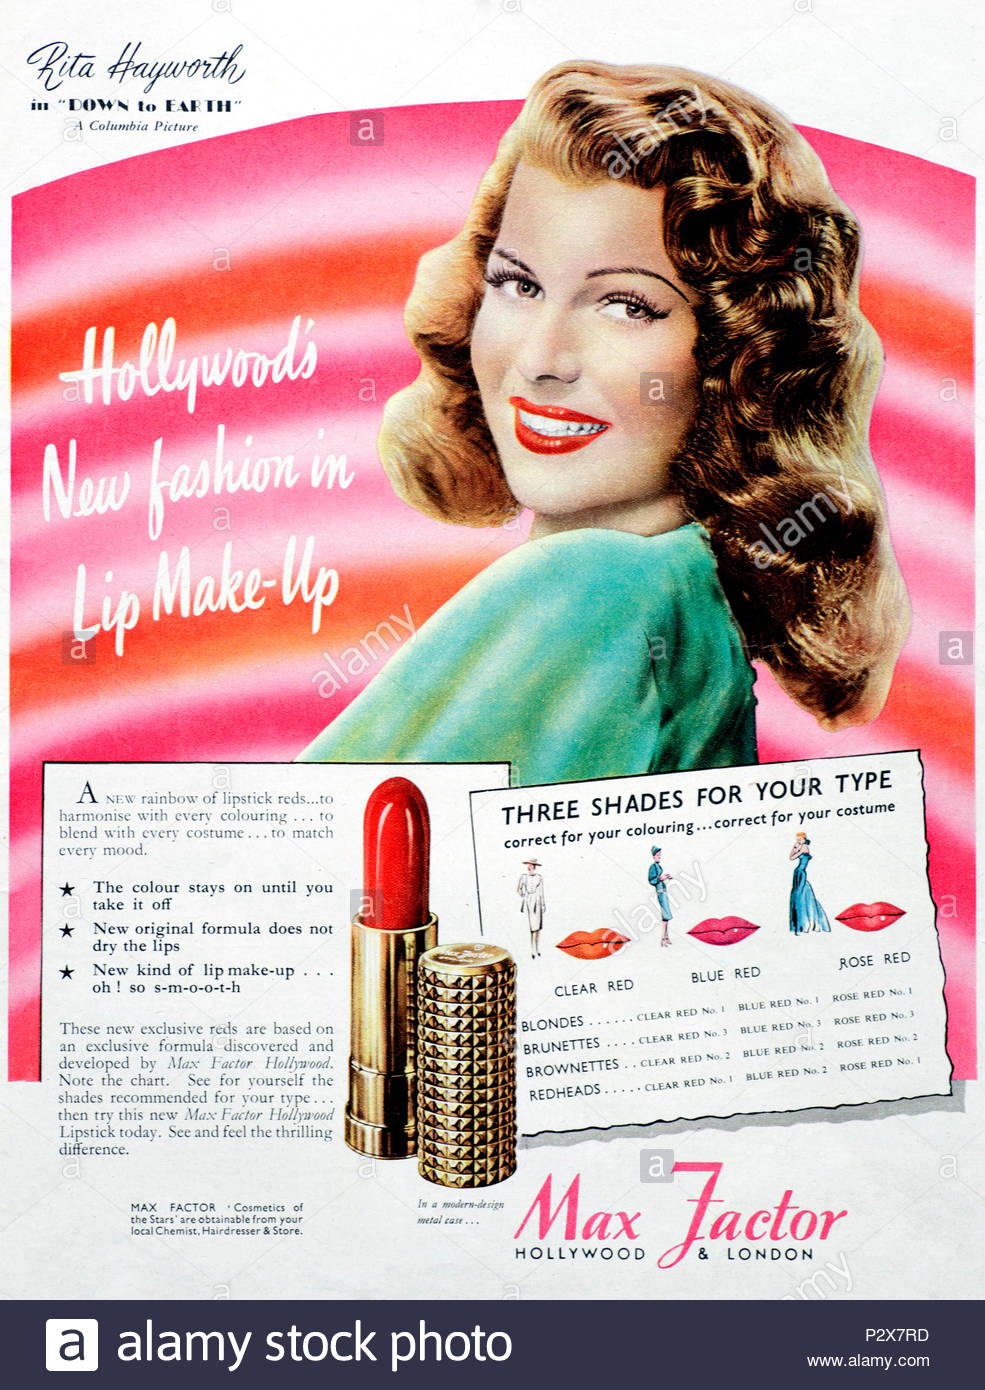 Vintage advertising for Max Factor lipstick promoted by movie star Rita Hayworth from 1947 - Stock Image